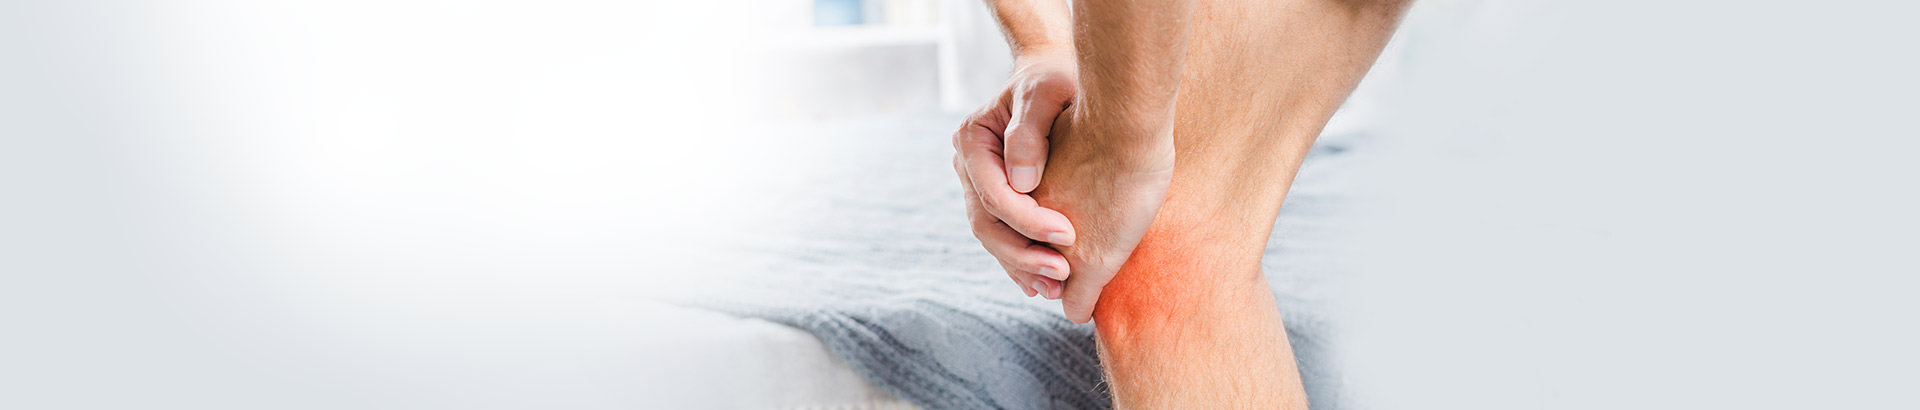 Best Joint Replacement Surgeon Mumbai